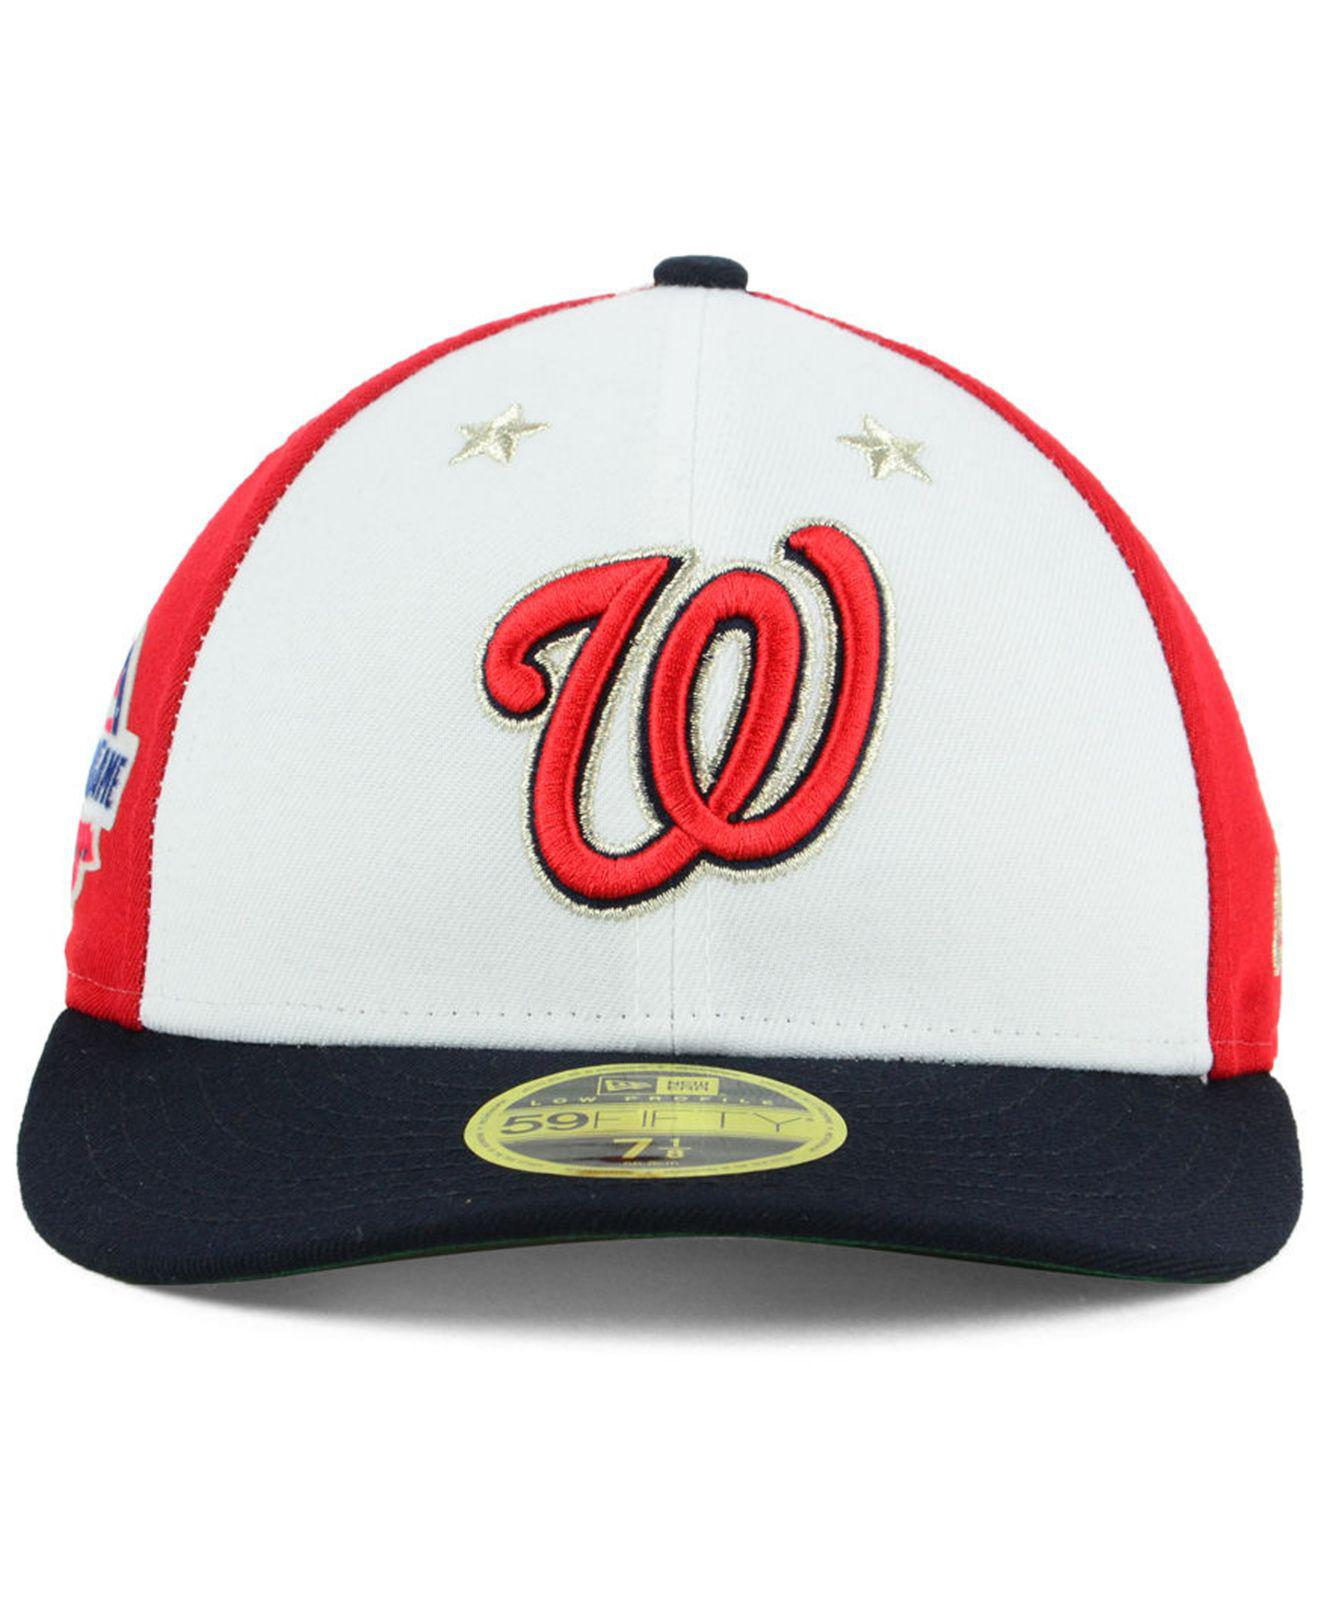 Lyst - Ktz Washington Nationals All Star Game Patch Low Profile 59fifty  Fitted Cap for Men 0338255b36fd